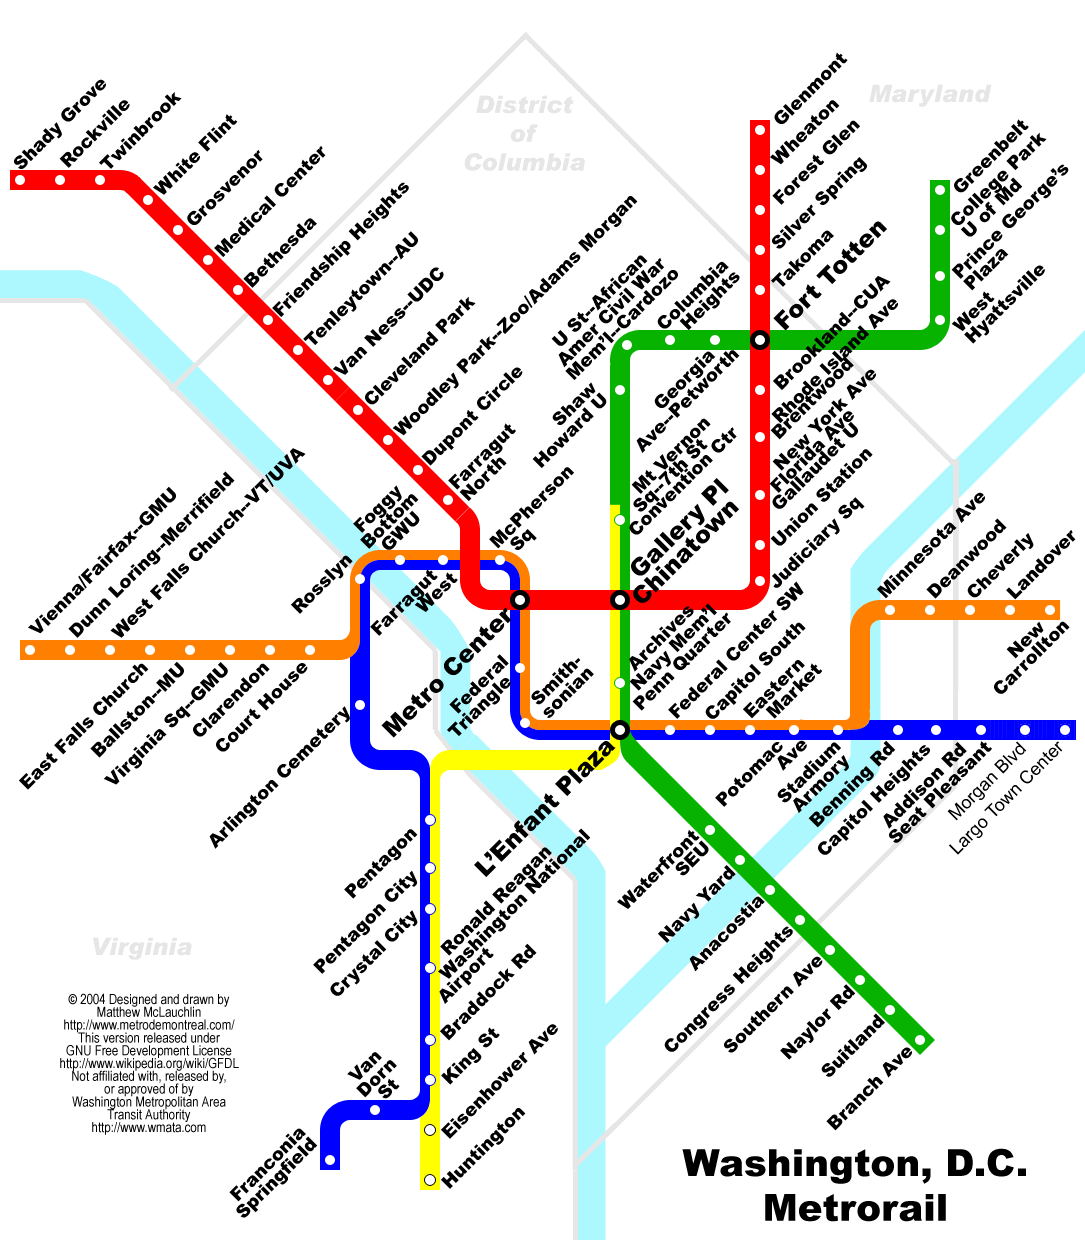 metrorail map with File Washington Dc Metro Map on 22562 likewise Rtsp moreover 429559225 together with Customer Service Matters in addition File Washington DC metro map.